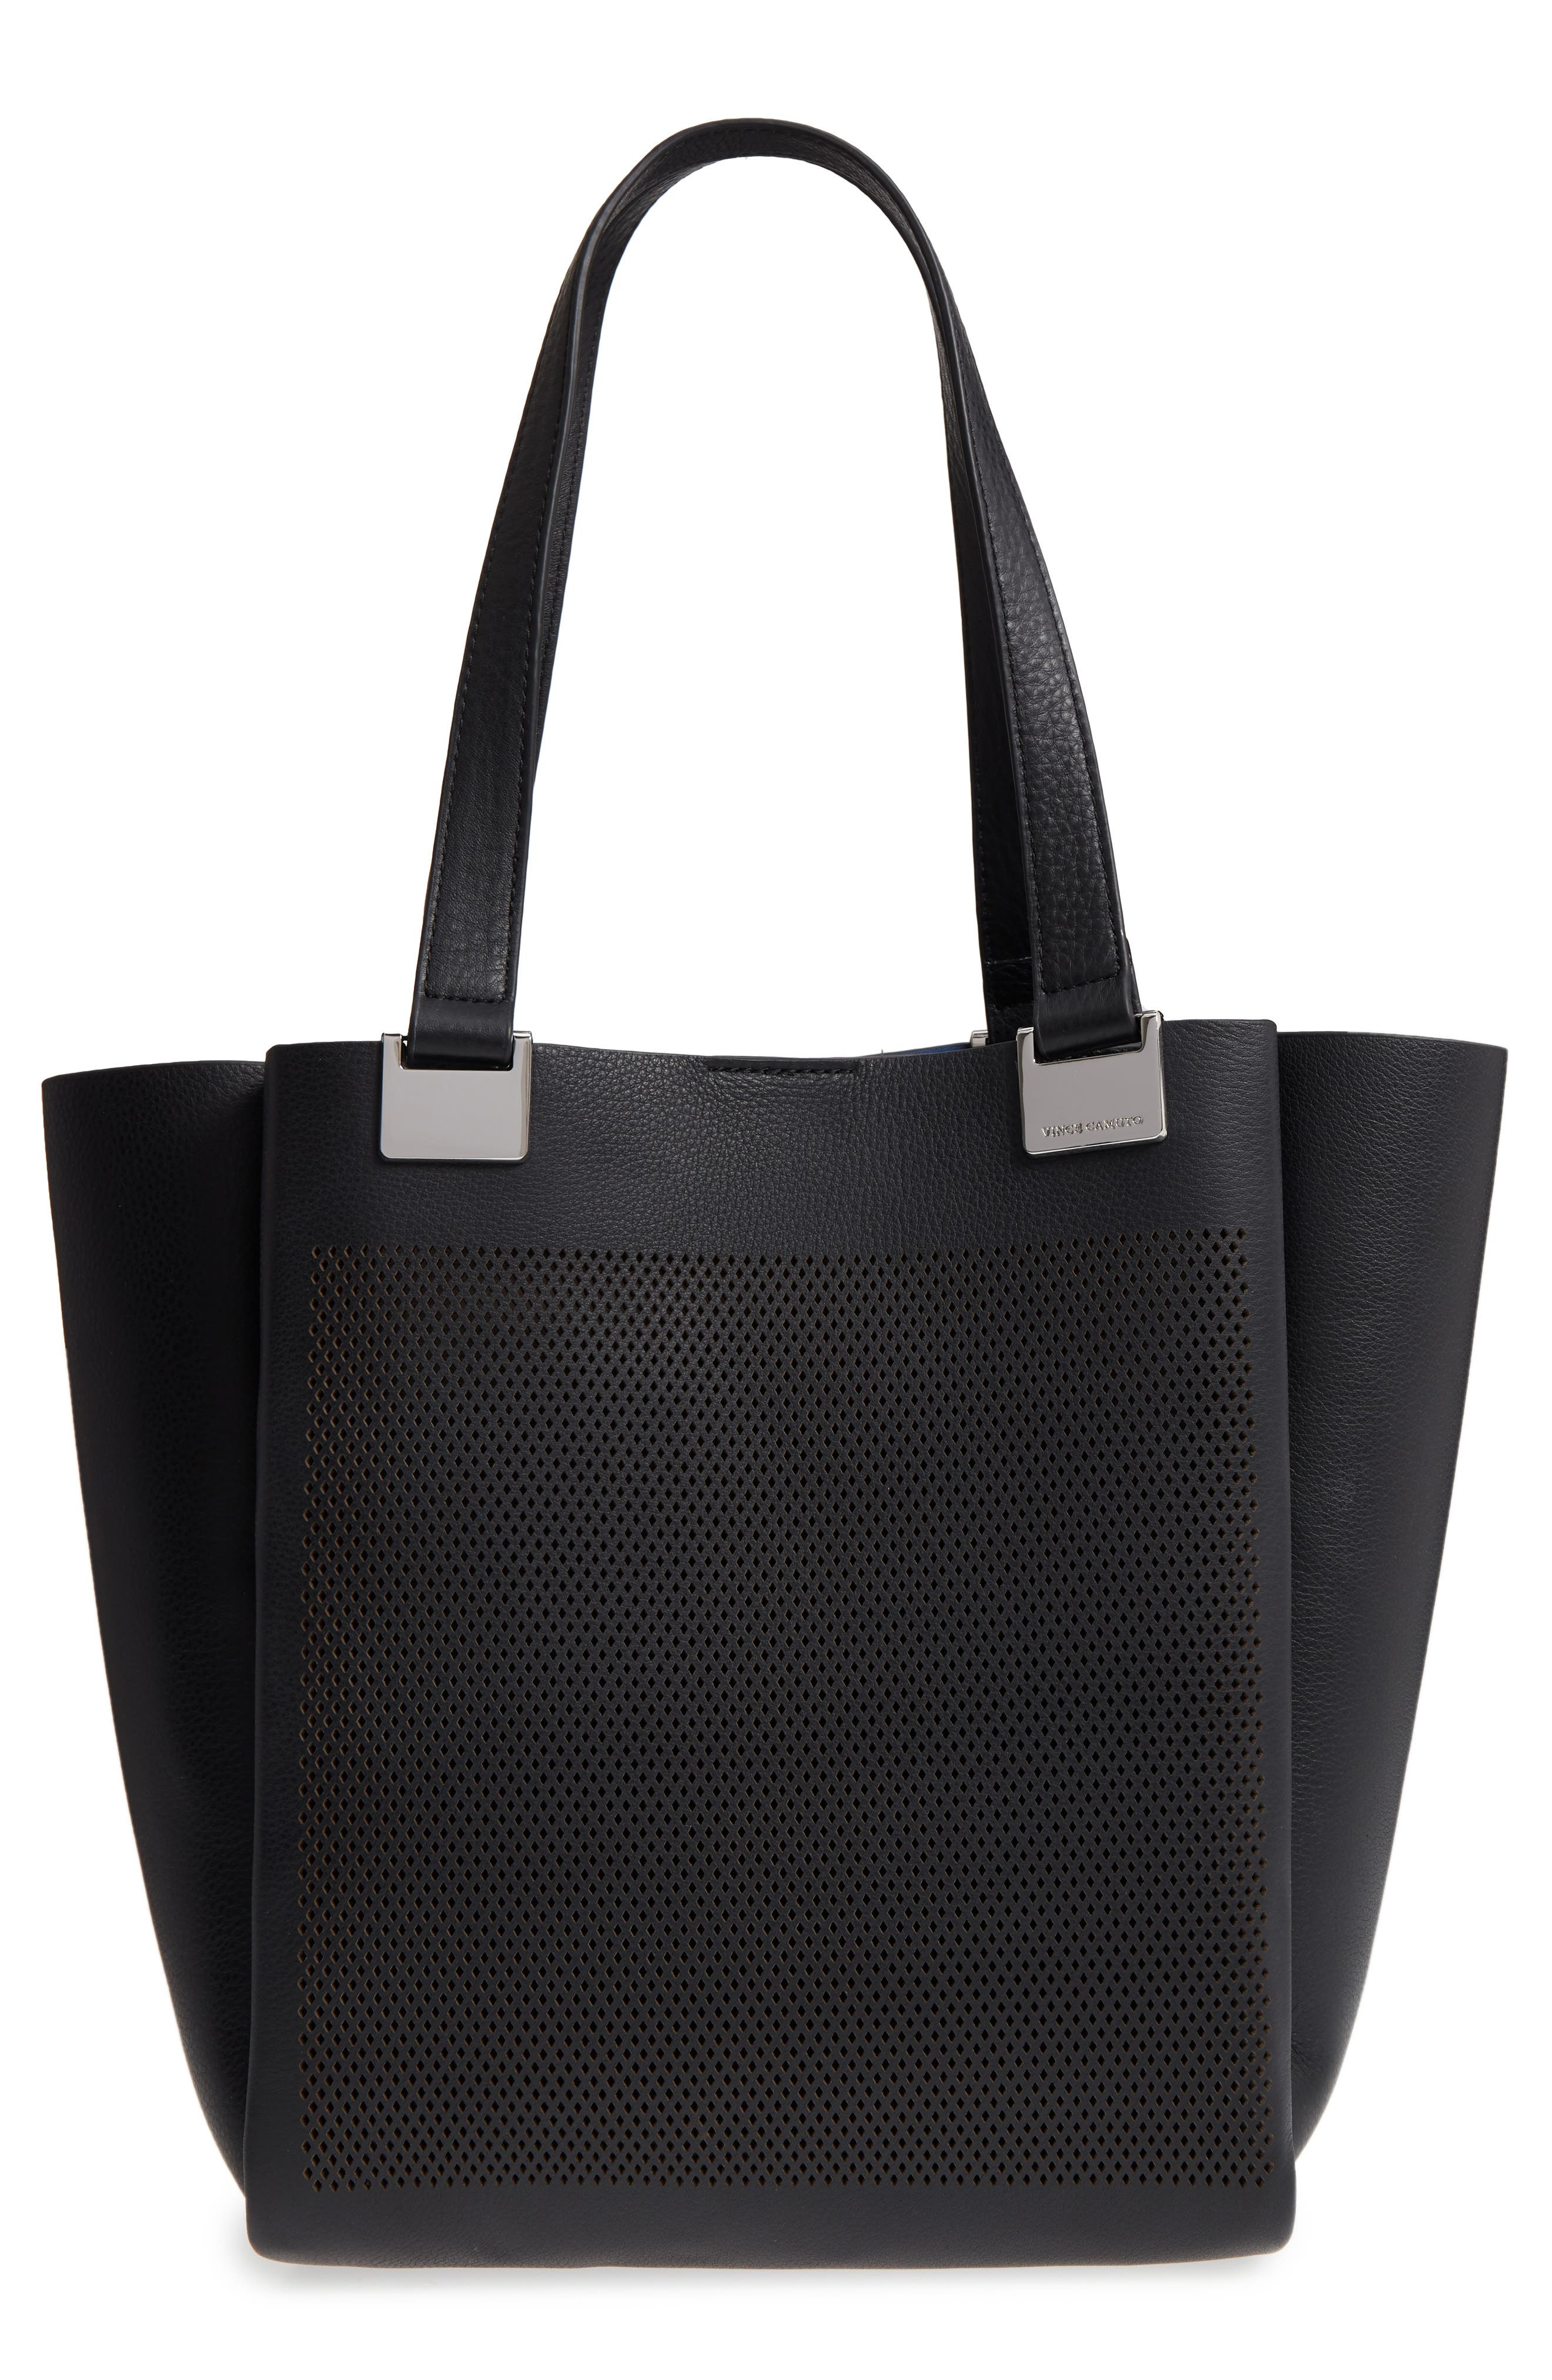 Beatt Perforated Leather Tote,                             Main thumbnail 1, color,                             001